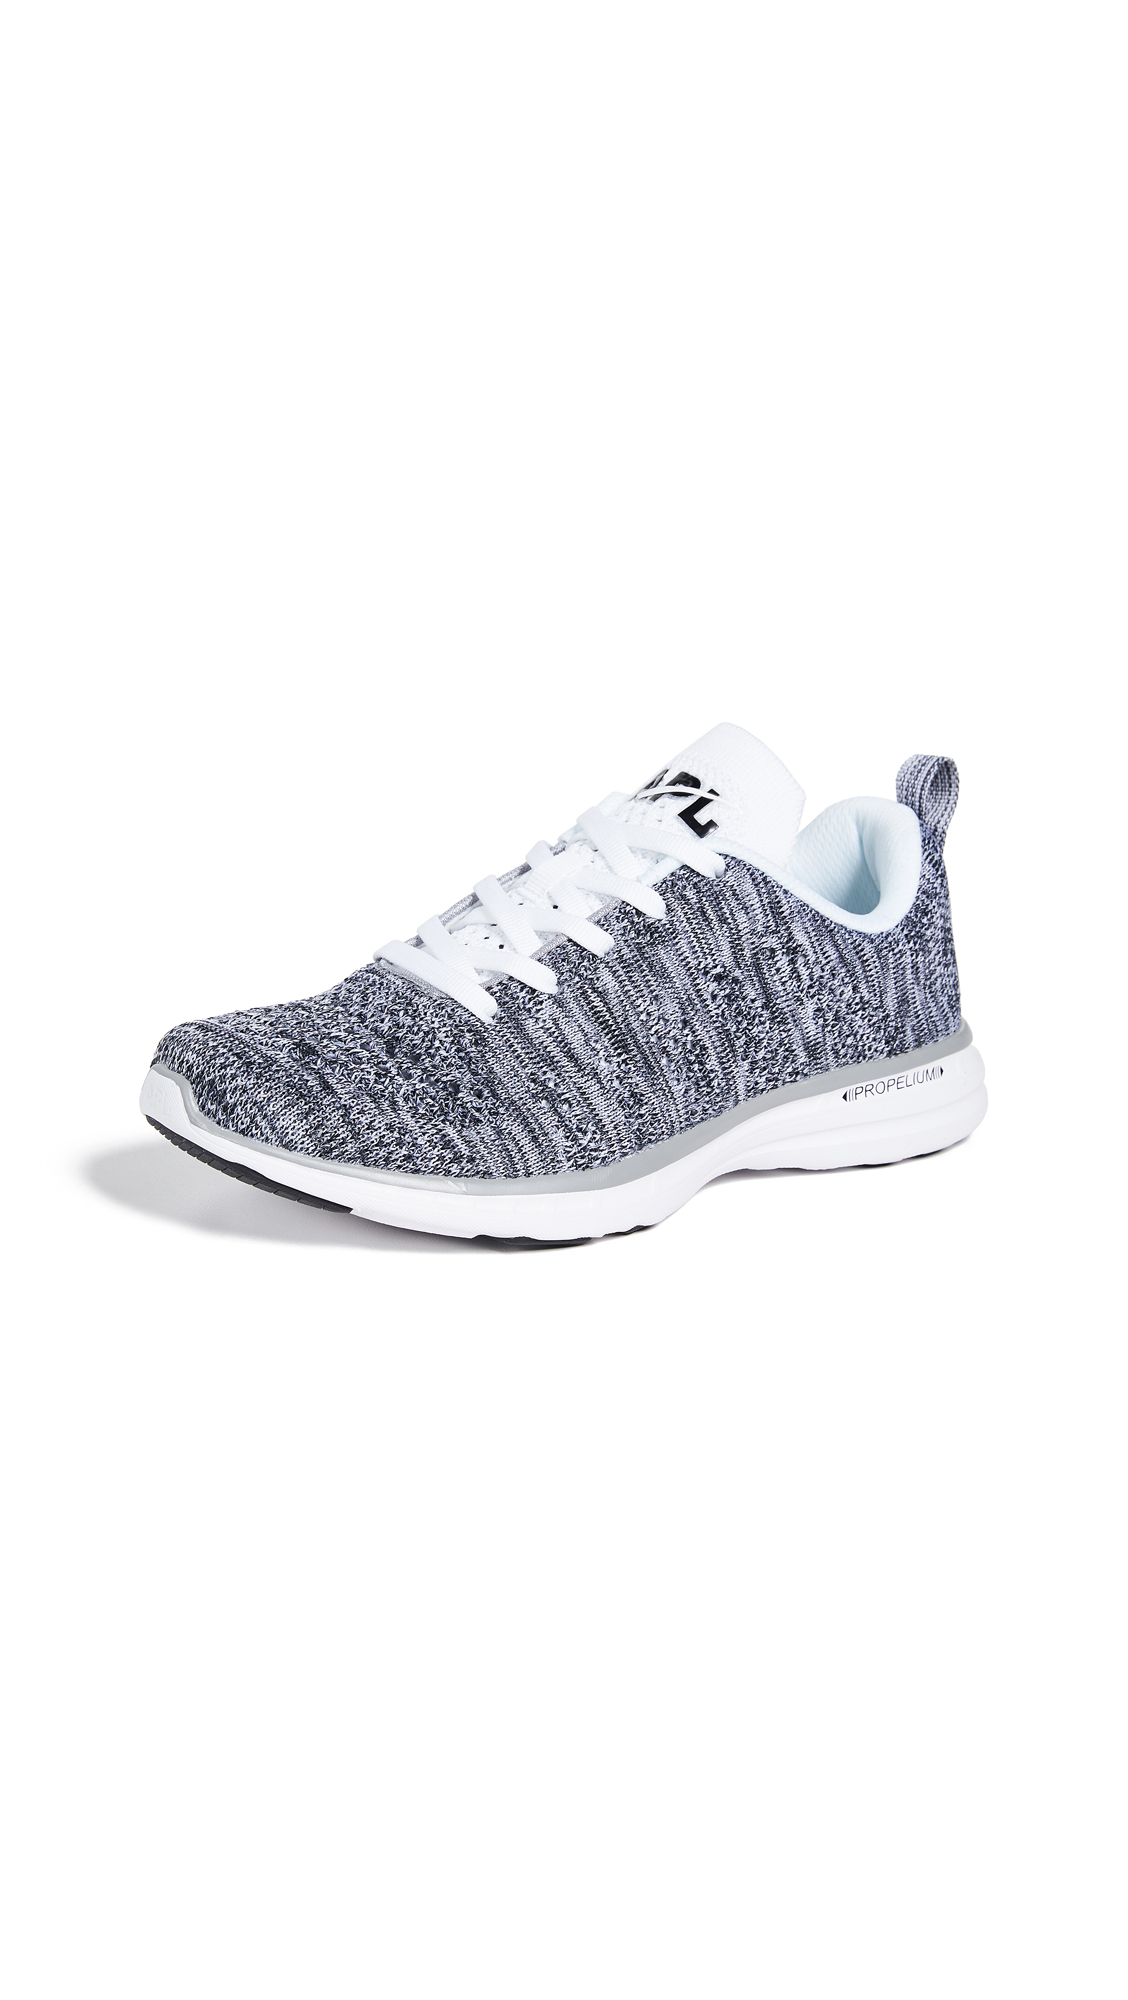 APL: Athletic Propulsion Labs TechLoom Pro Sneakers - Heather Grey/White/Black